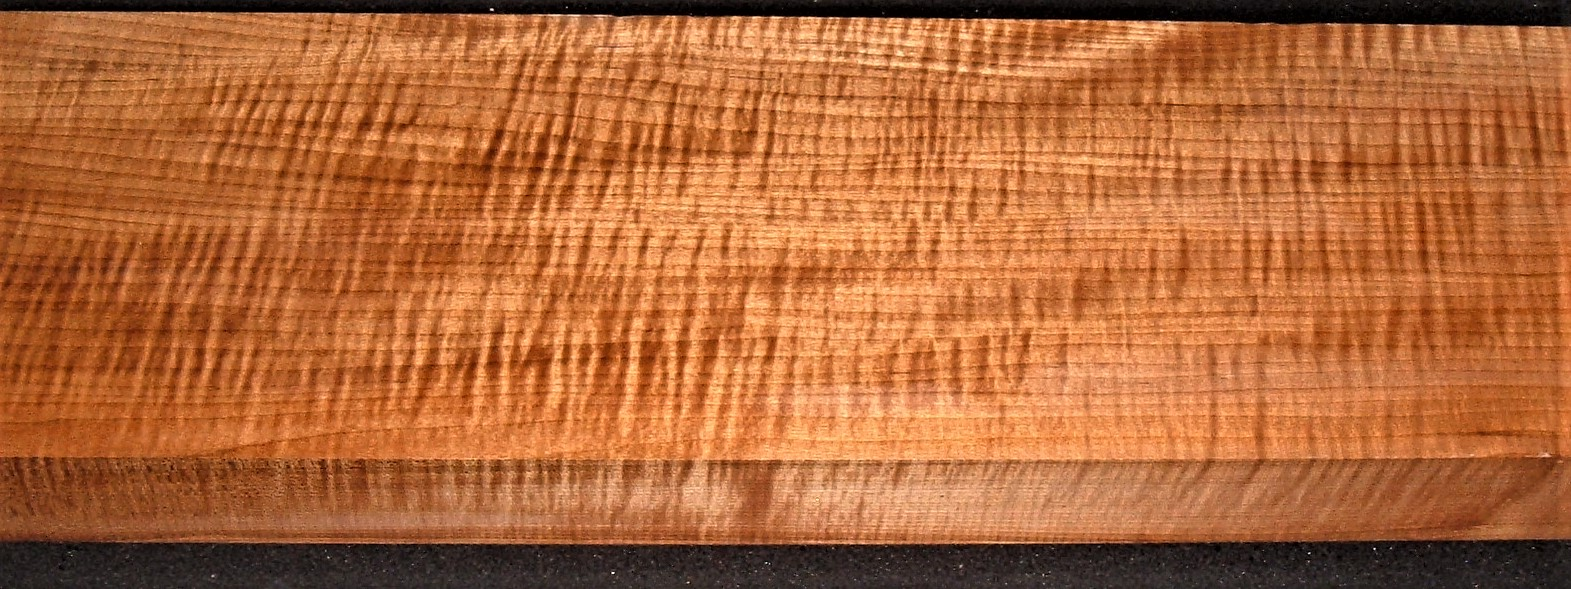 QRM2009-156JK, 1-15/16x6-7/8x44, Quartersawn Roasted Curly Maple